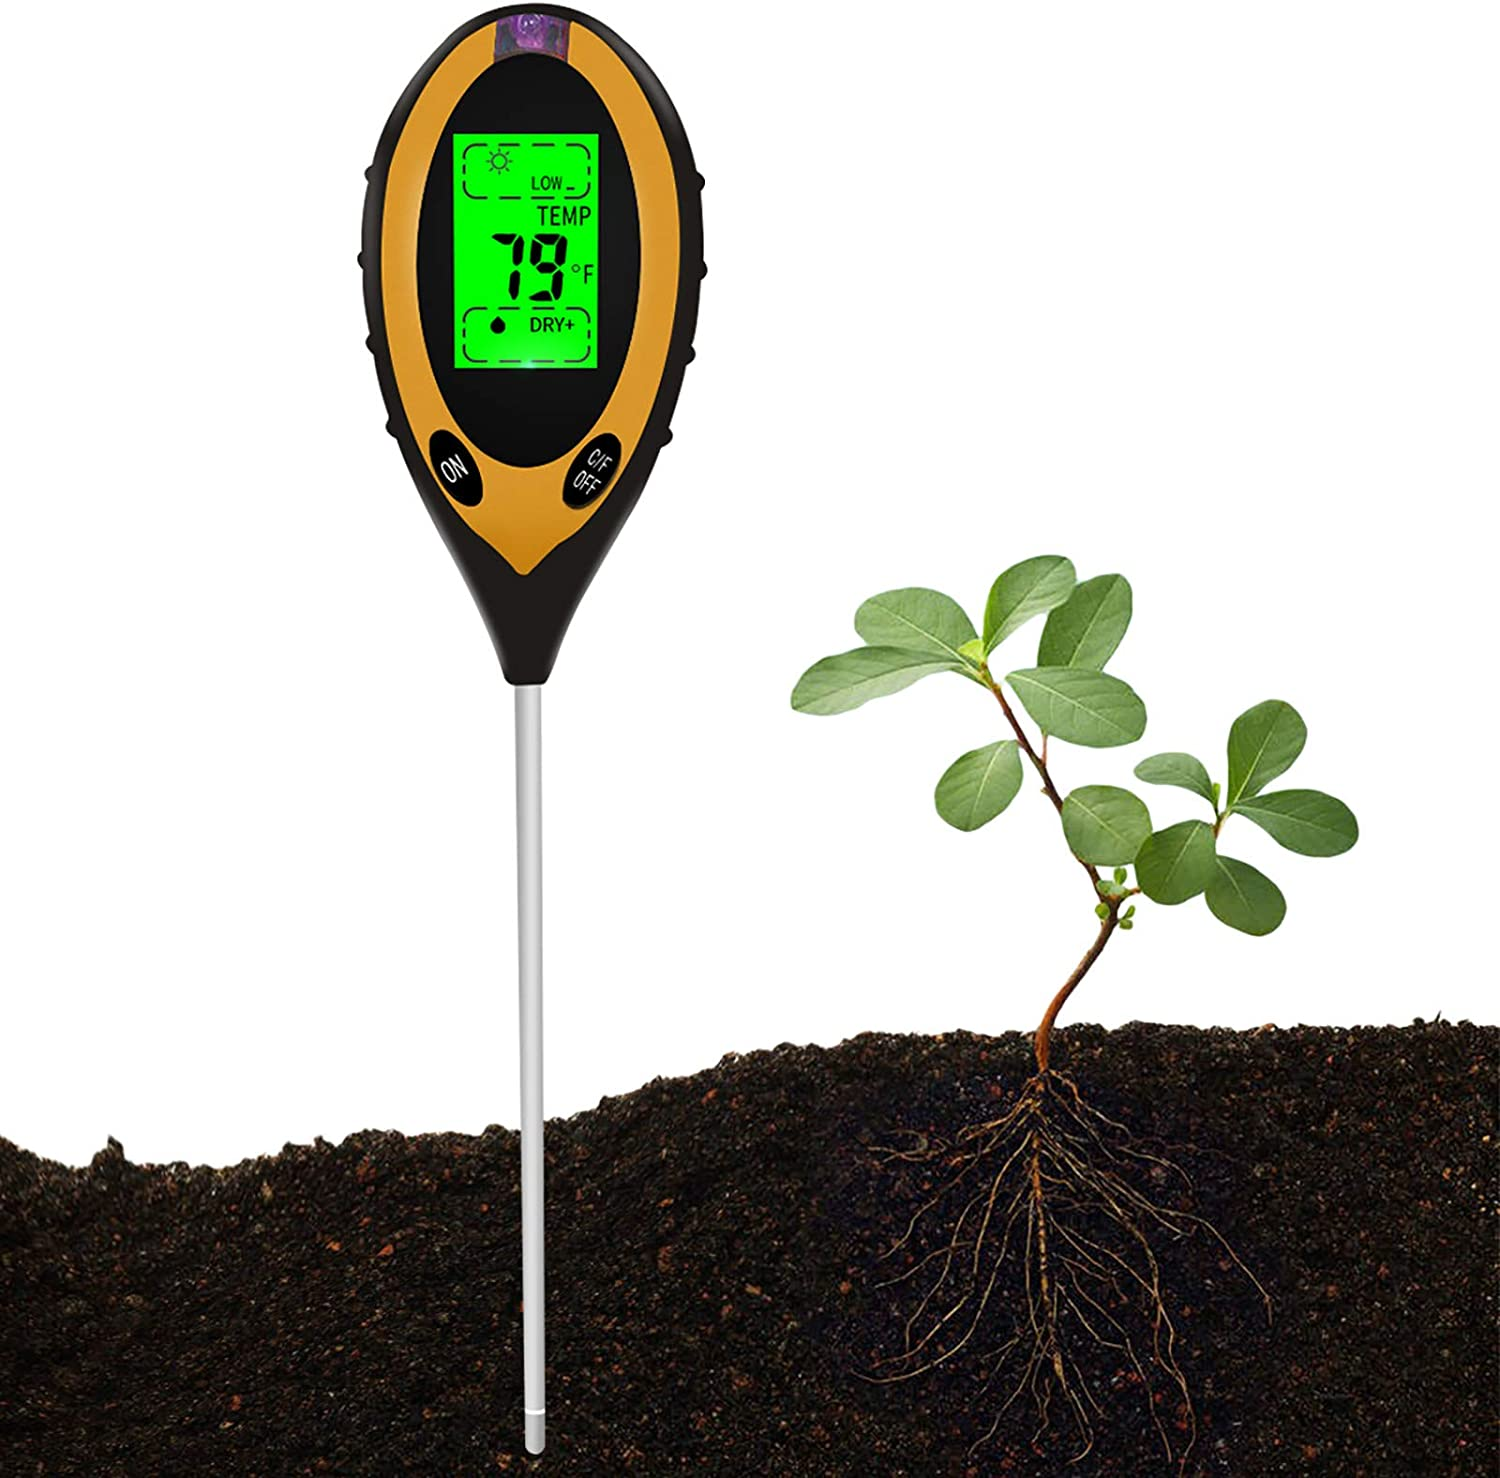 MORITIA Soil pH Meter, 4 in 1 High-Precision Gardening Soil Tester with pH Value, Light, Moisture, Temperature, Great for Garden Farm, Lawn, Potted Plants, Large Screen Easy to Read (Not for Liquid)